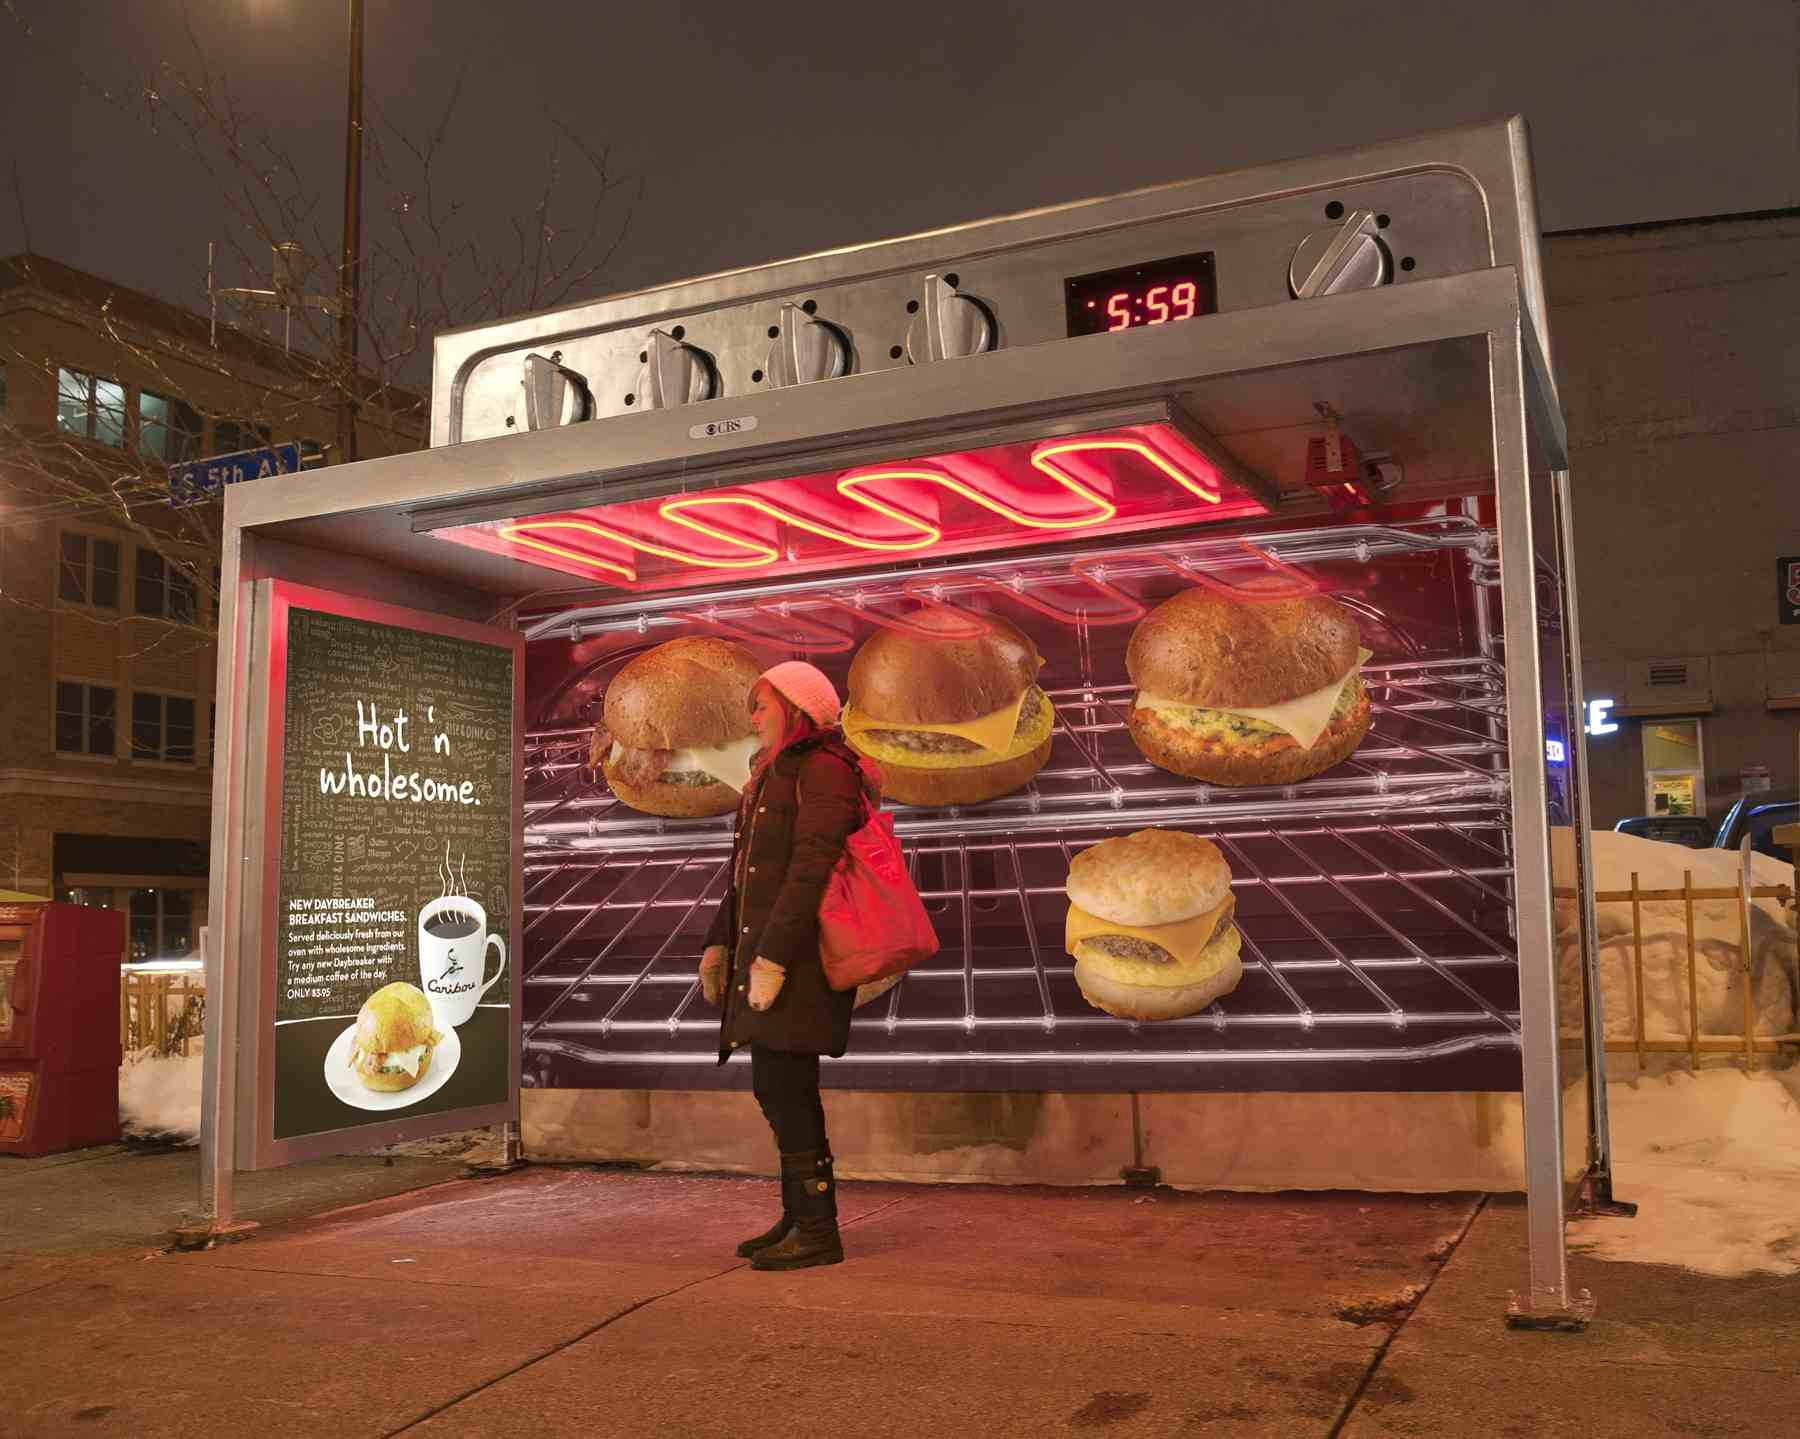 Caribou coffee designs heated bus shelters to prote its new sandwich.